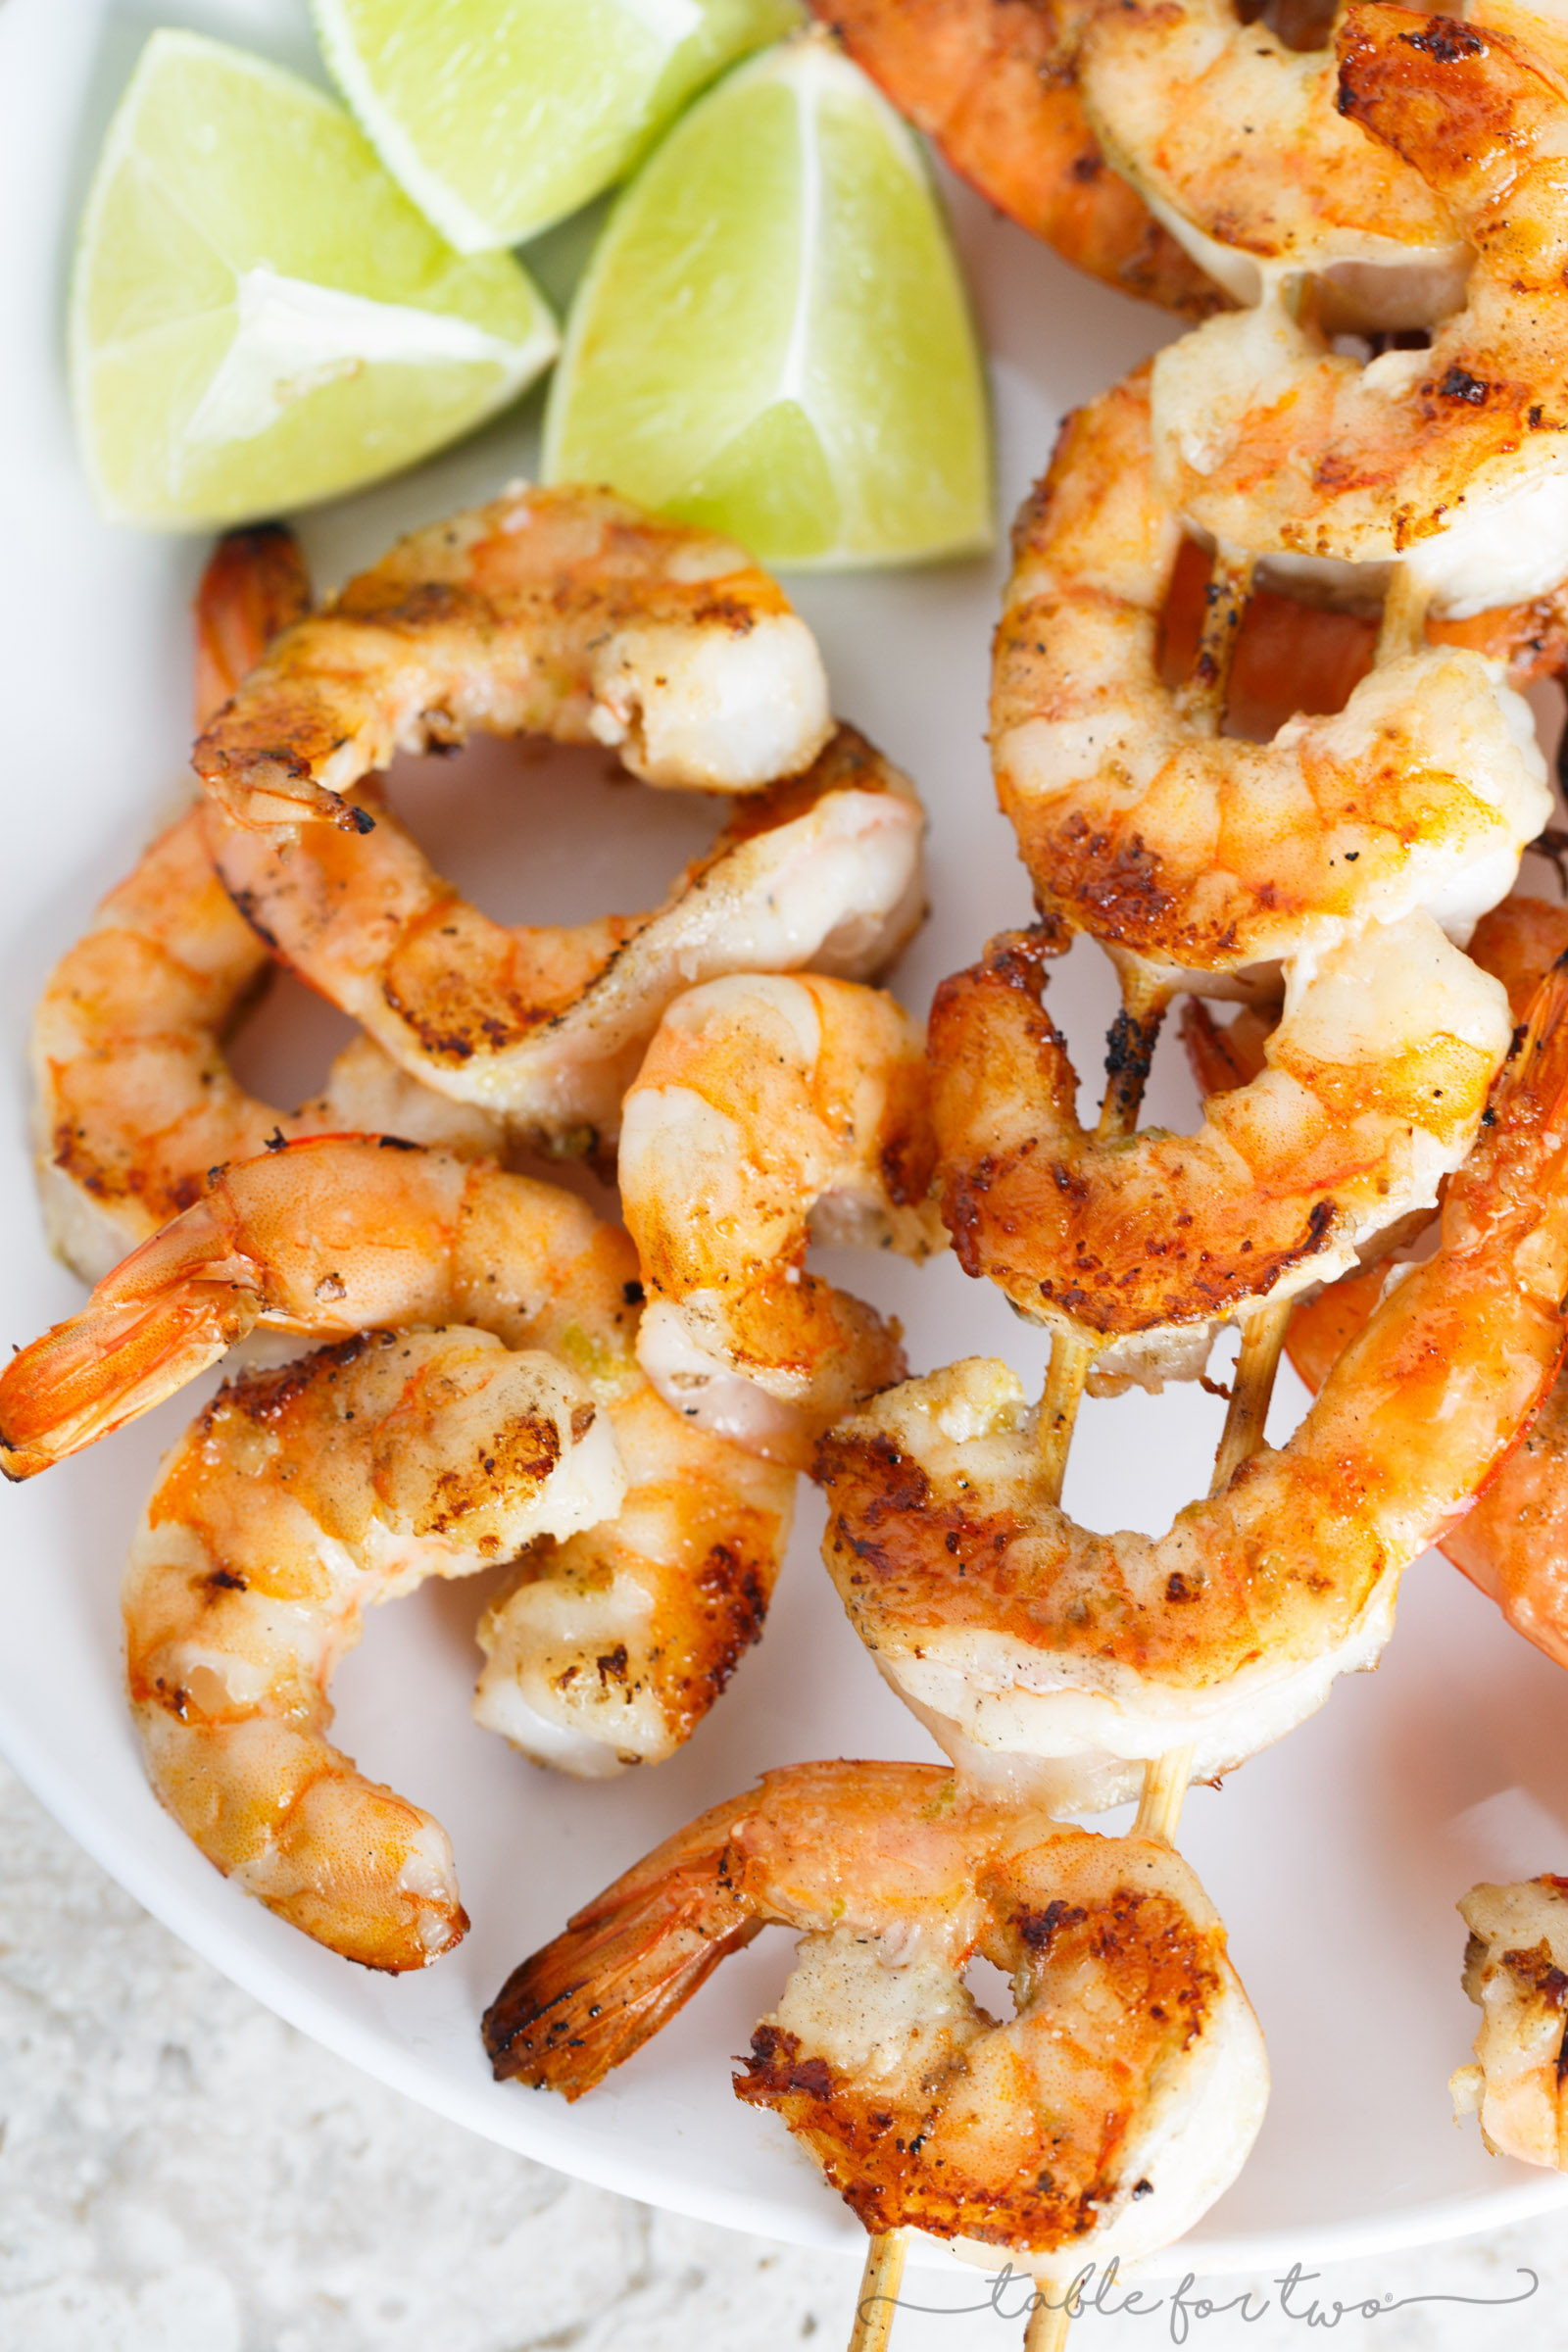 Turn up the grill and make these salted lime butter grilled shrimp skewers for your next cookout! You will love the salty lime and buttery flavor that is slathered all over the shrimp!